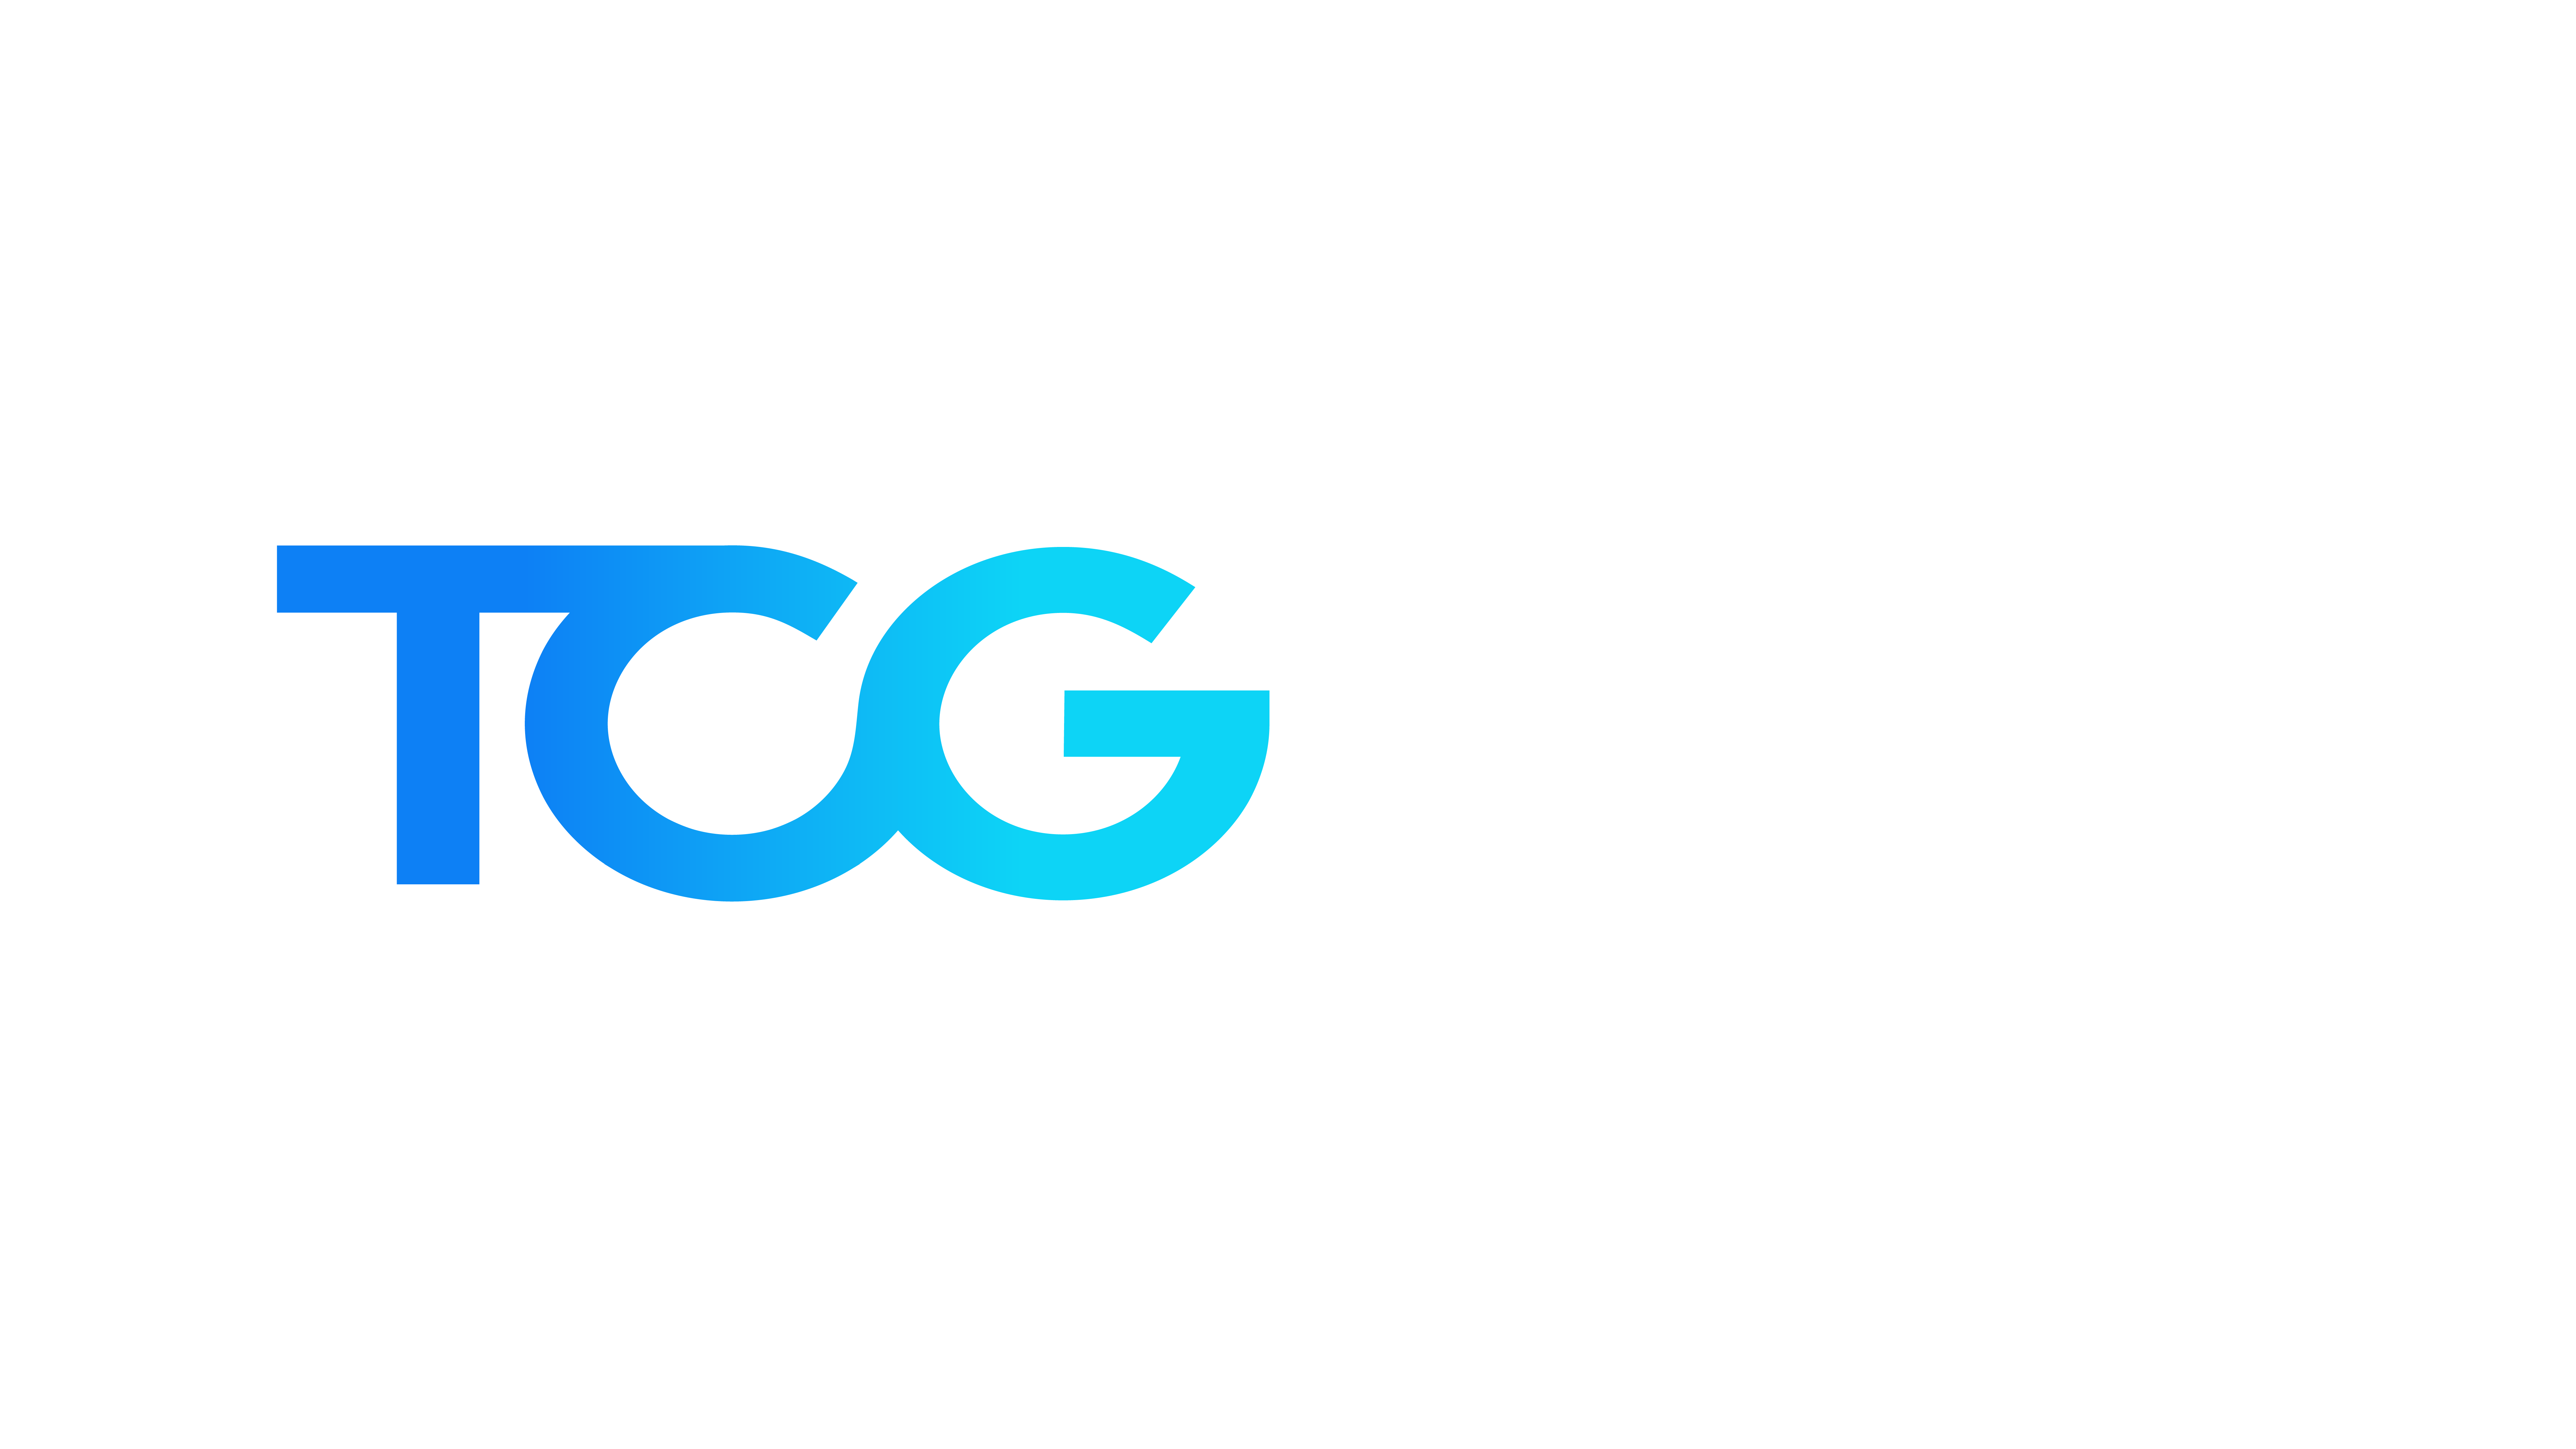 Tolbert Consulting Group TCG